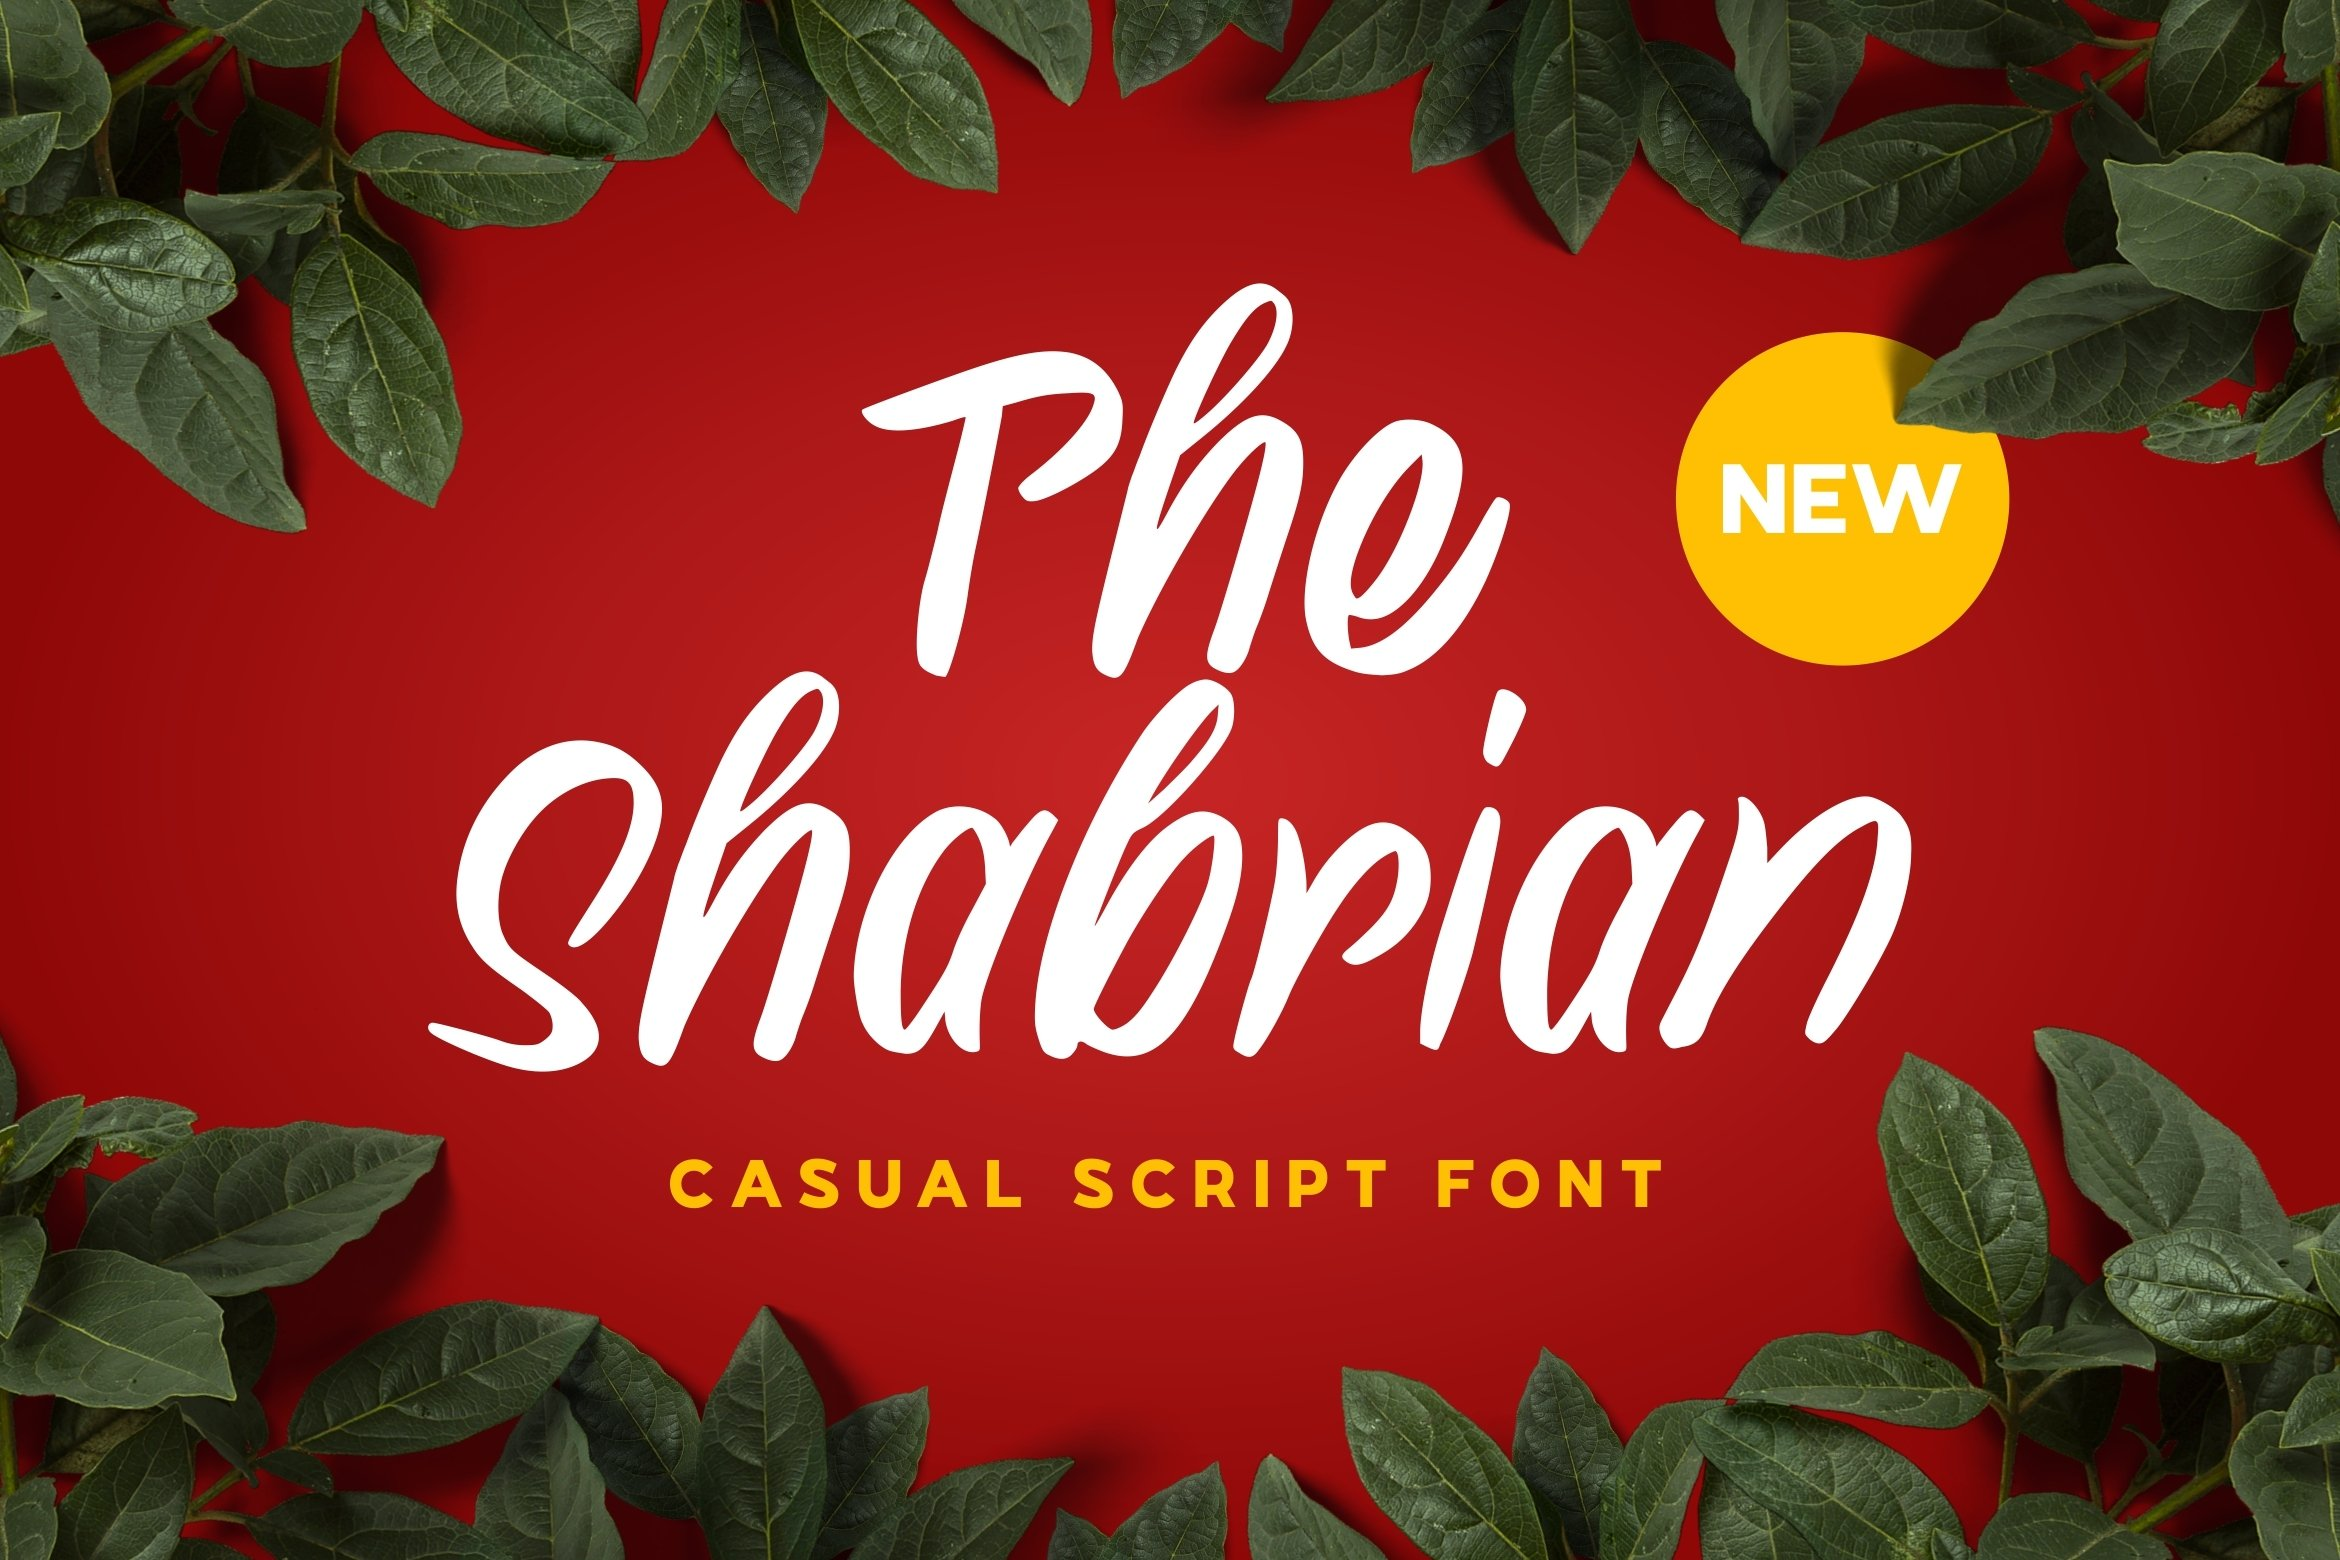 Shabrian Display Font example image 1